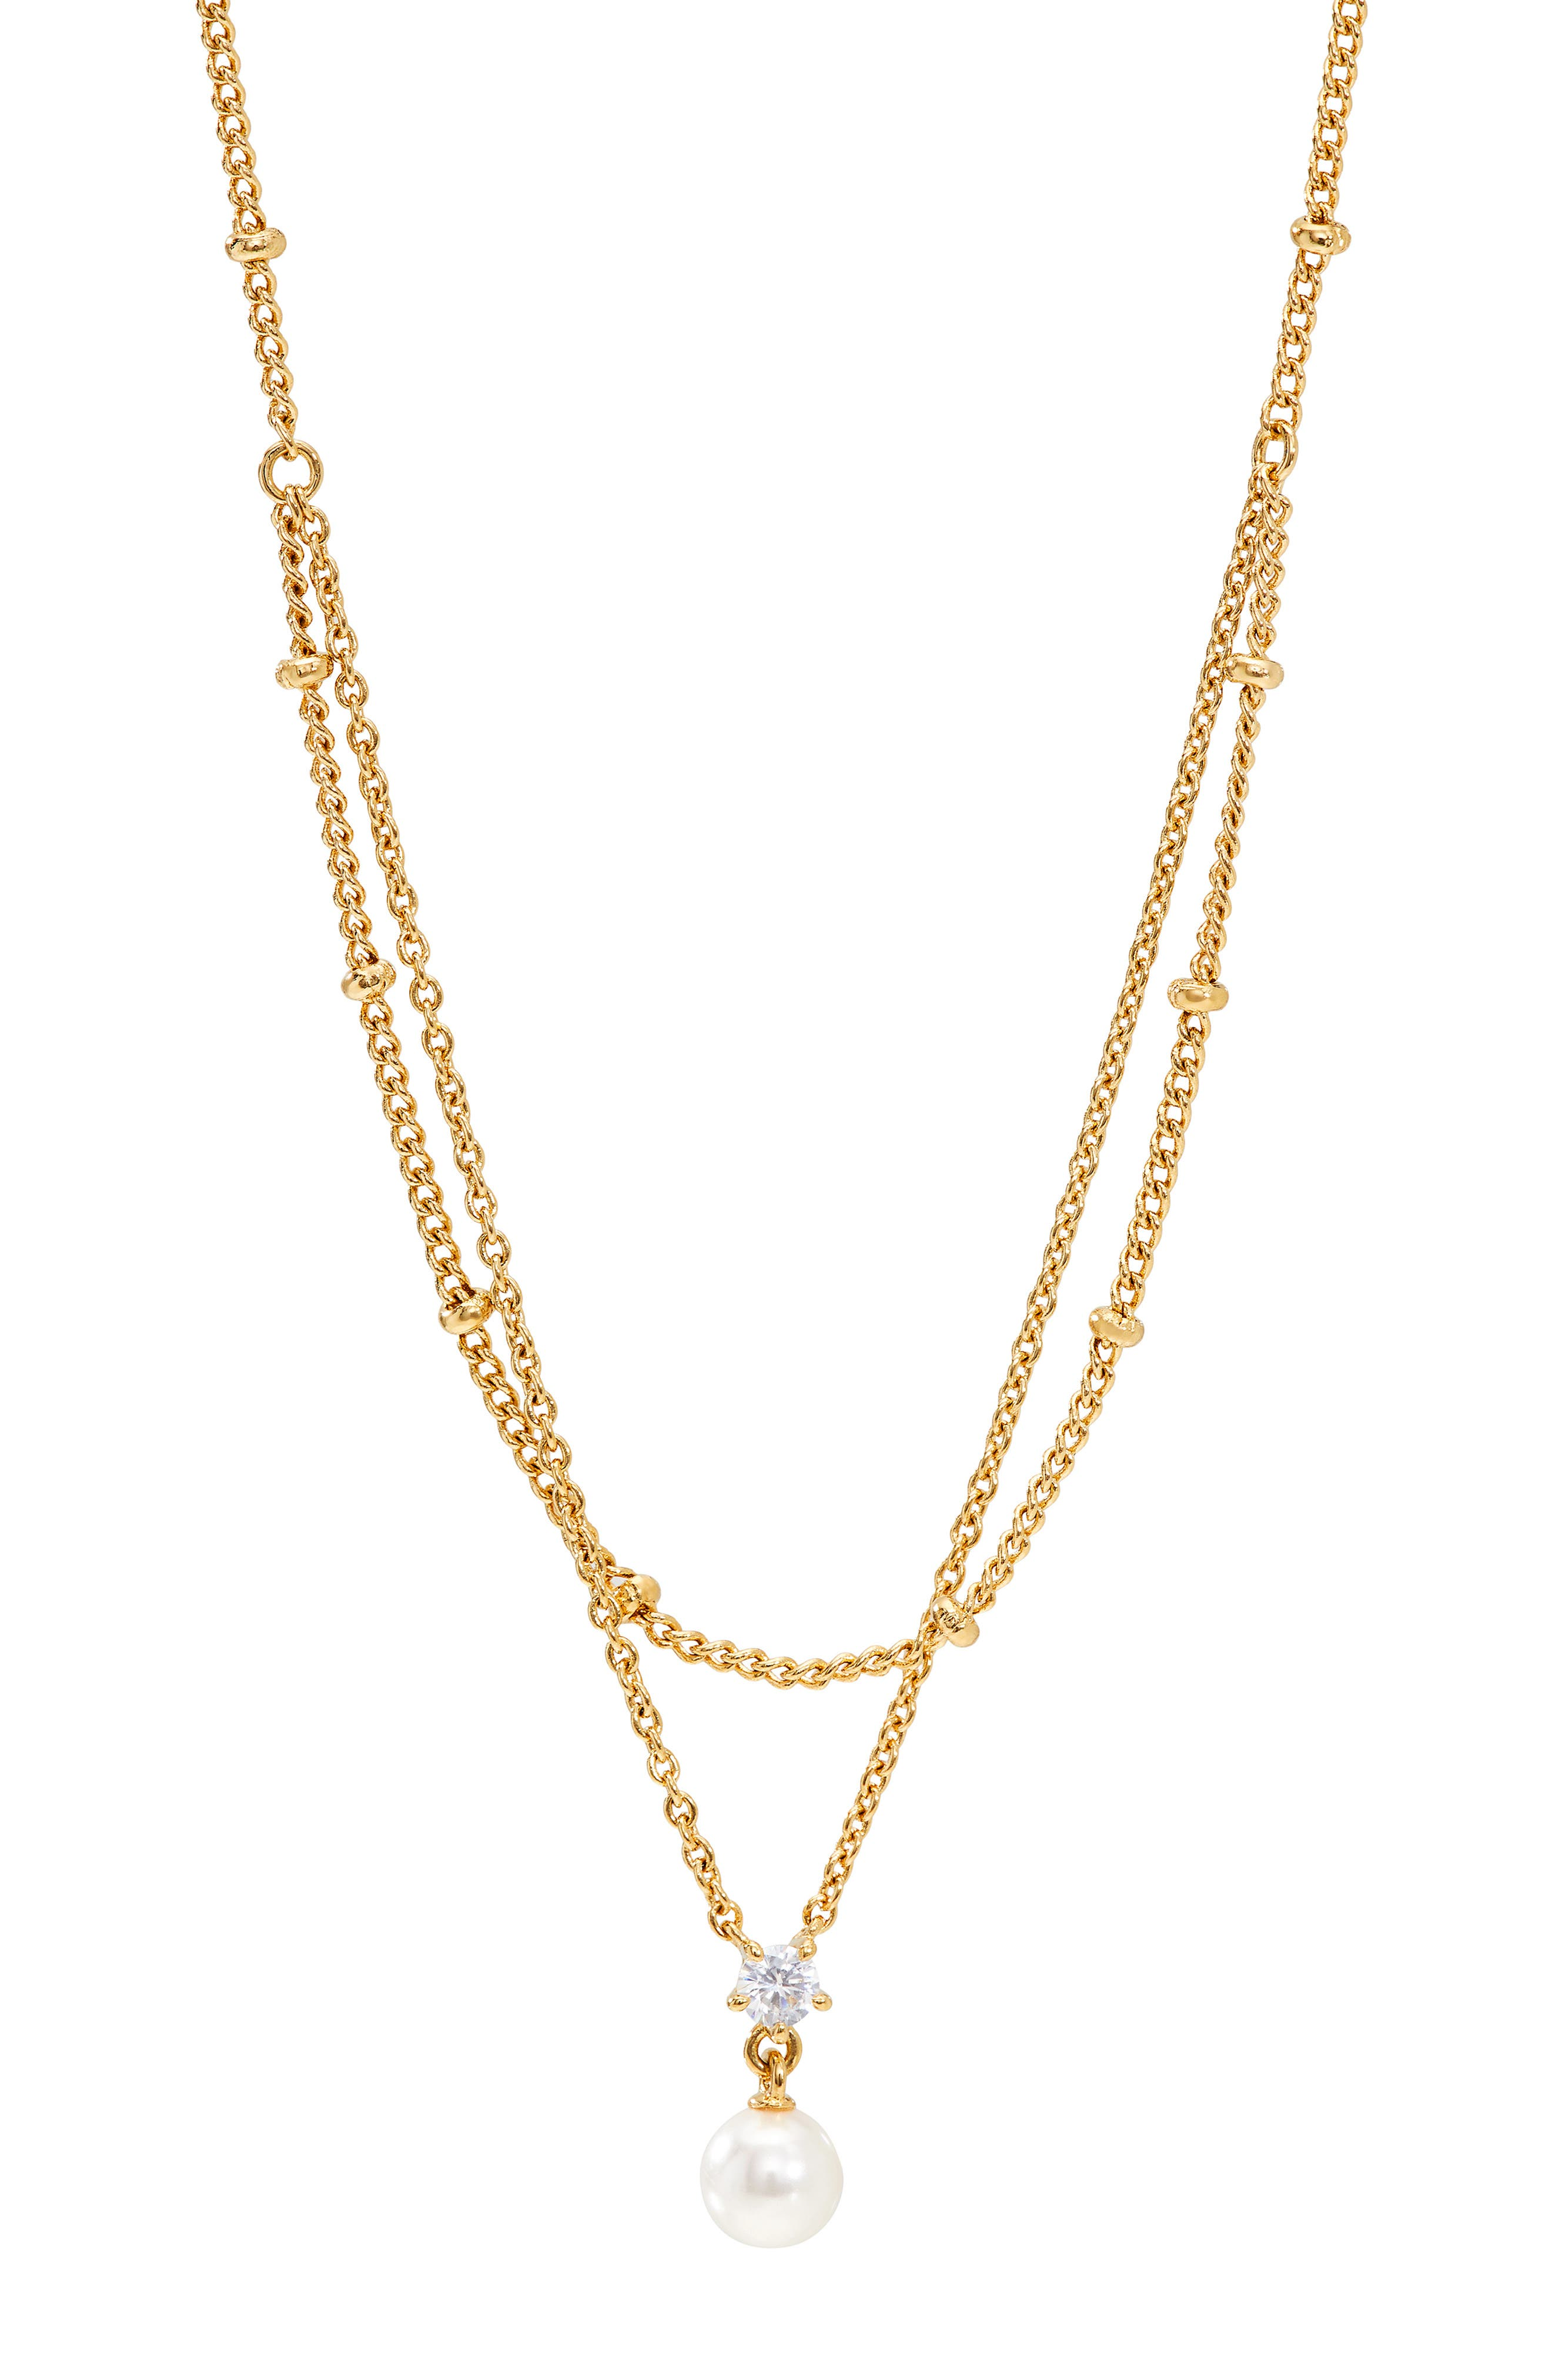 Imitation Pearl & Cubic Zirconia Layered Necklace